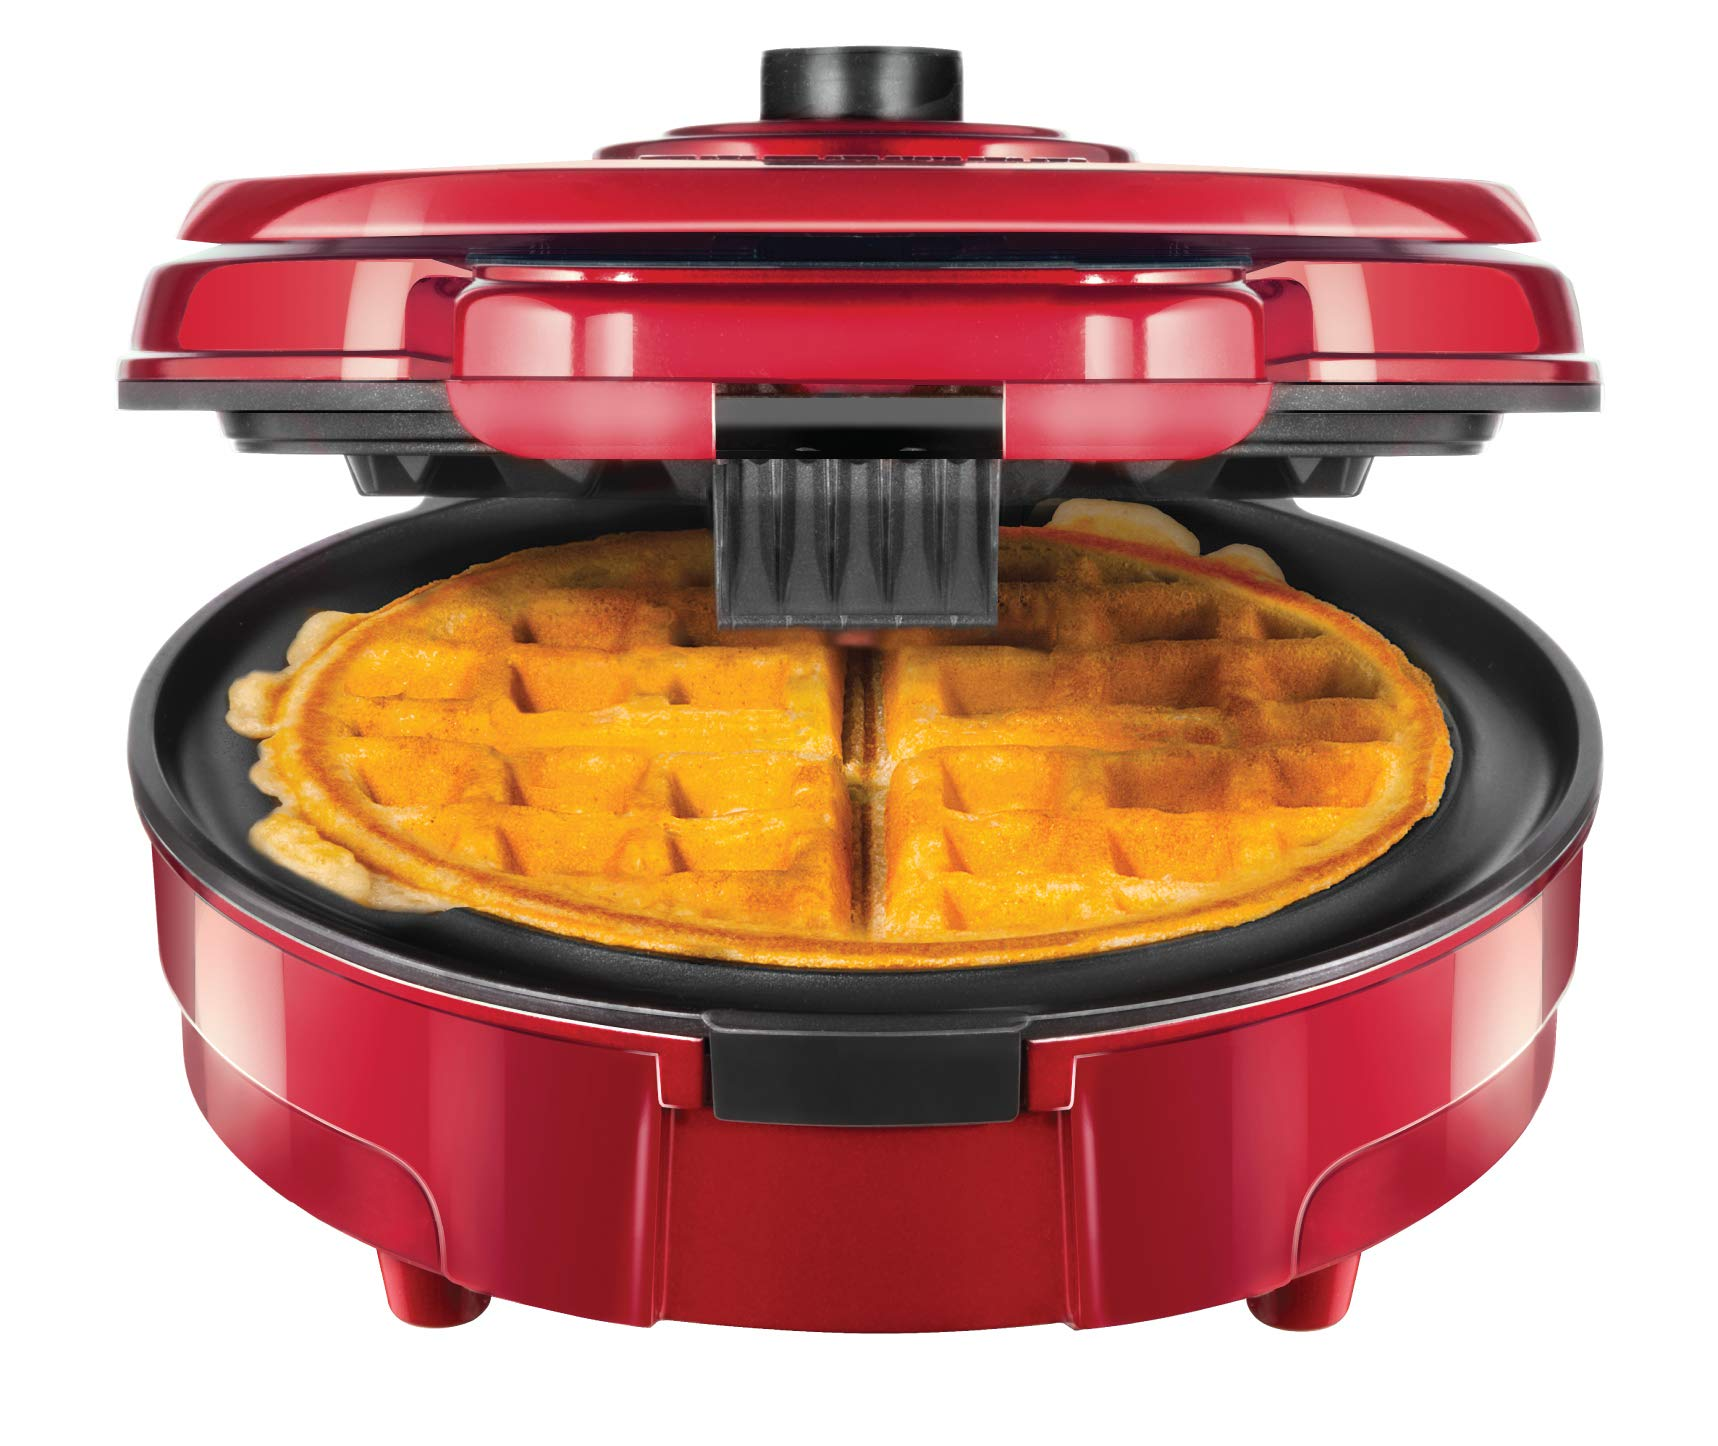 Chefman Anti-Overflow Belgian Maker w/Shade Selector & Mess Free Moat Round Waffle-Iron w/Nonstick Plates & Cool Touch Handle, Measuring Cup Included, Red by Chefman (Image #1)